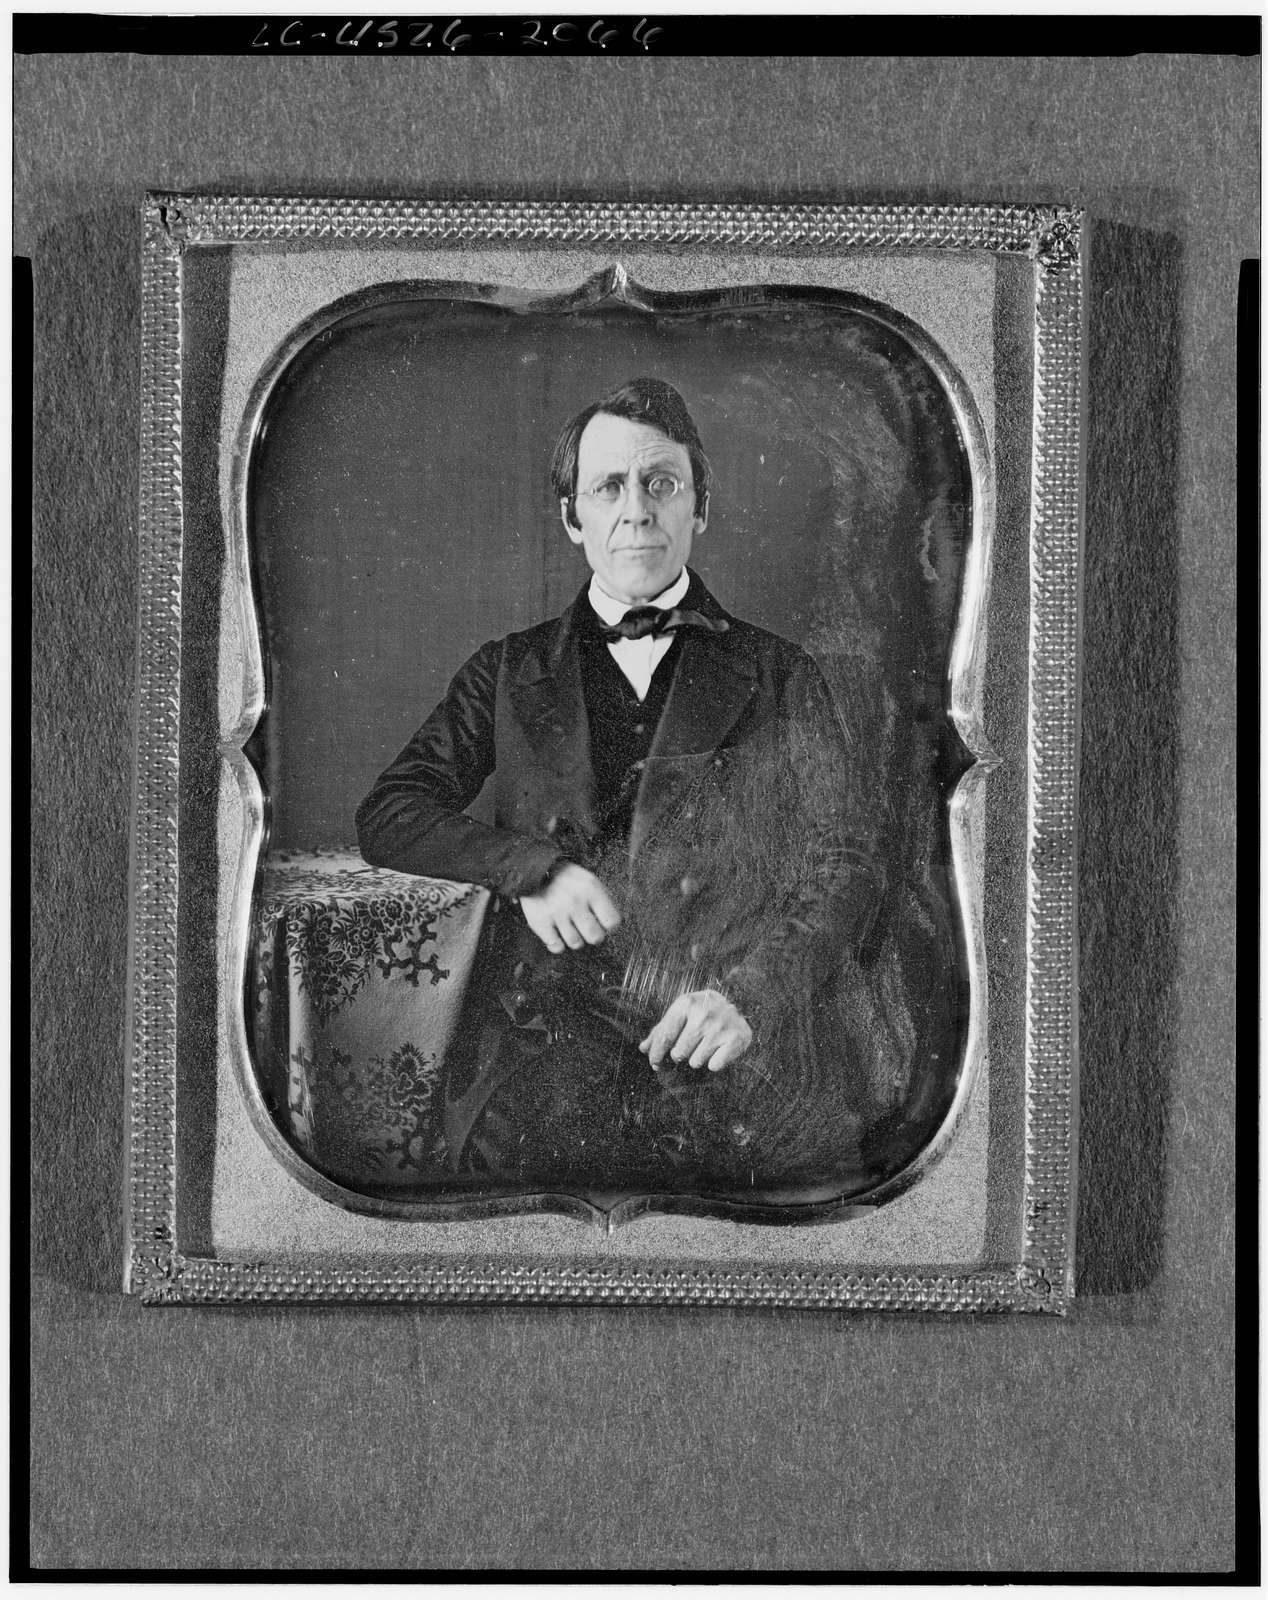 [Unidentified man wearing spectacles, half-length portrait, seated, facing front, arm on table with tablecloth]